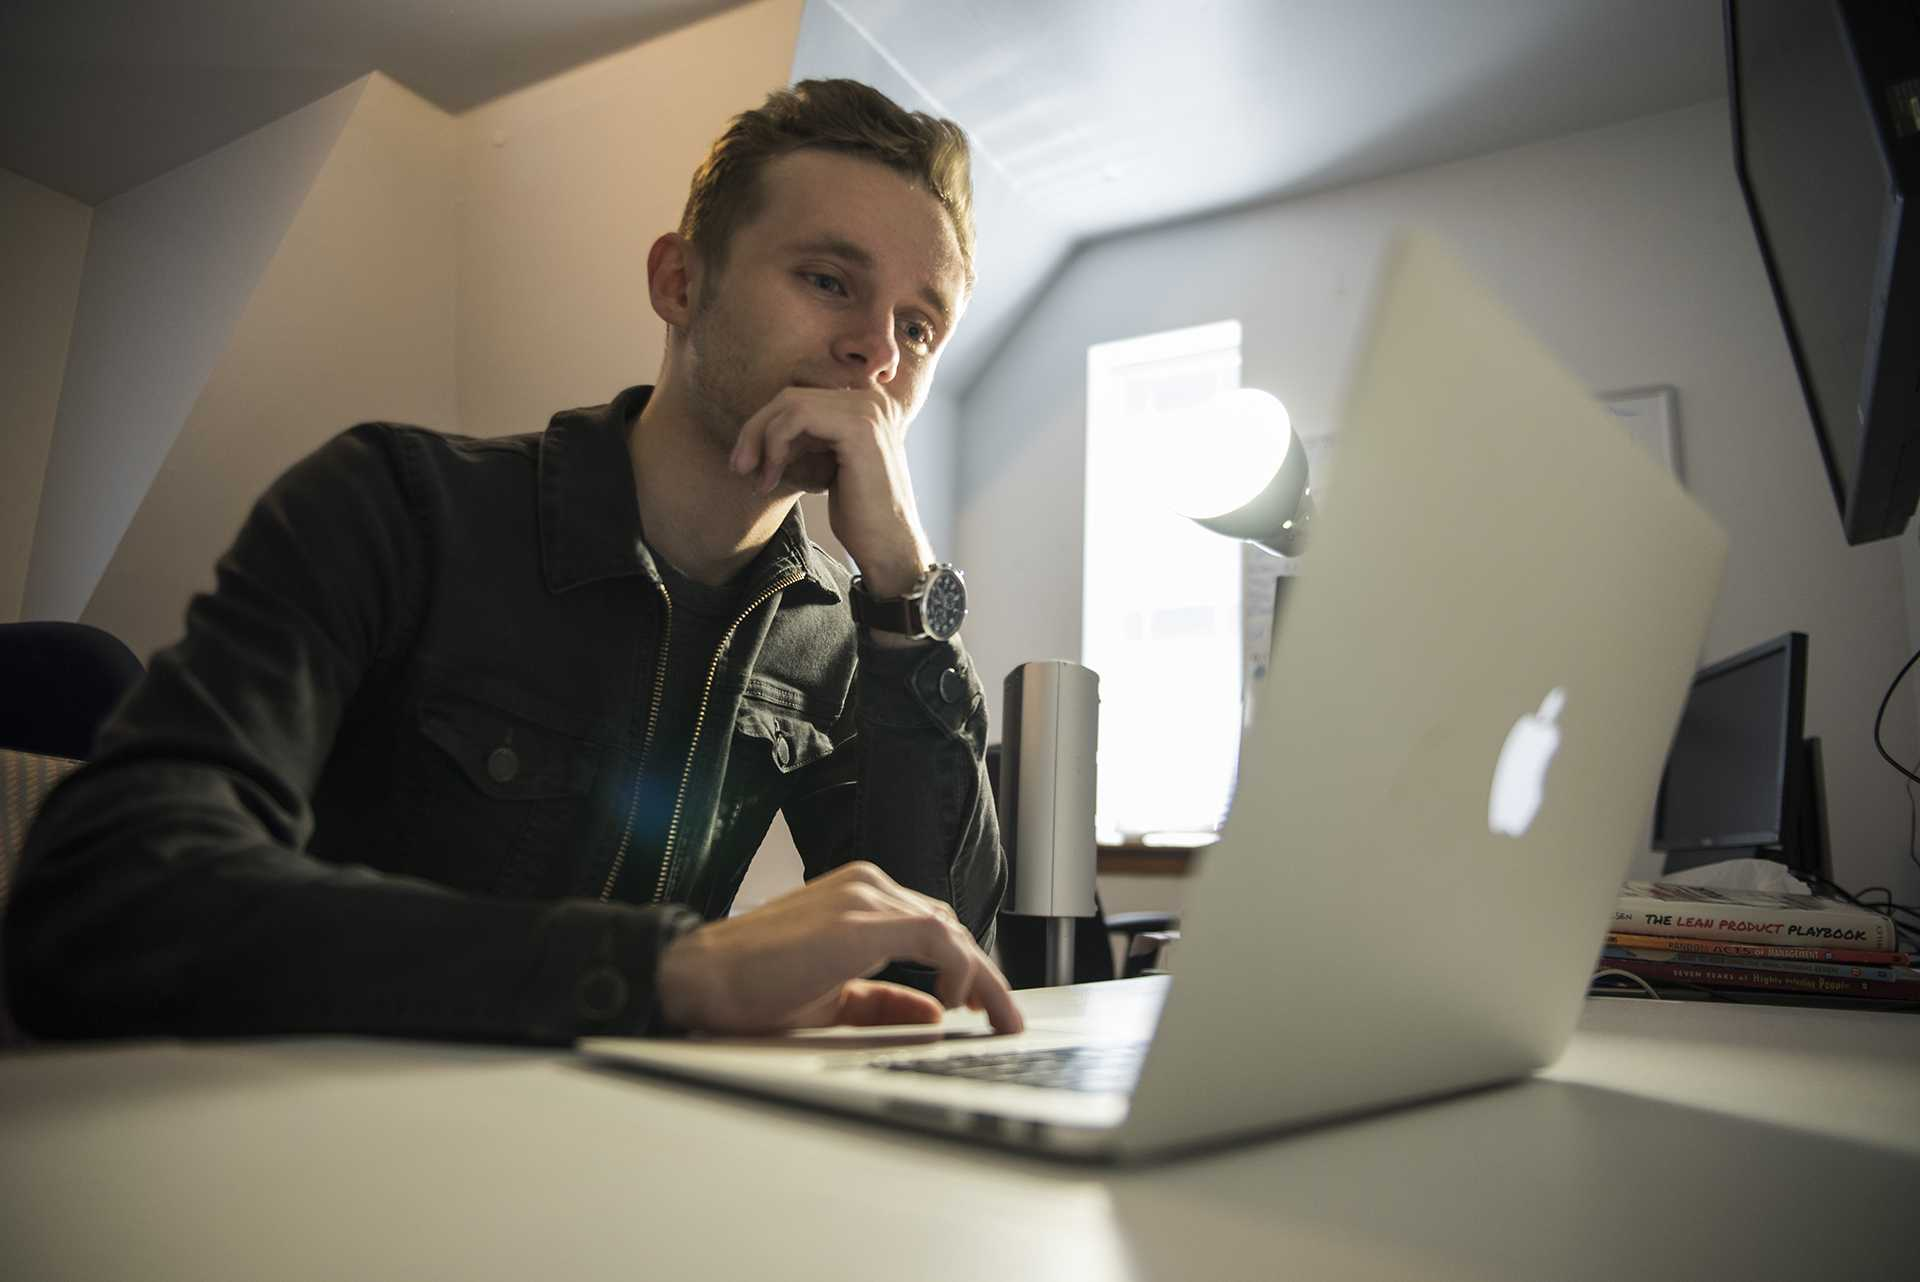 Logan Grote, cofounder of Abal Therapeutics, works inside his office at 322 N. Clinton St. on Monday, Oct. 9. Abal is a startup company developing software to streamline the process of ABA, Applied Behavior Analysis. The tablet-based application aims to improve the success of ABA practice. (Ben Smith/The Daily Iowan)